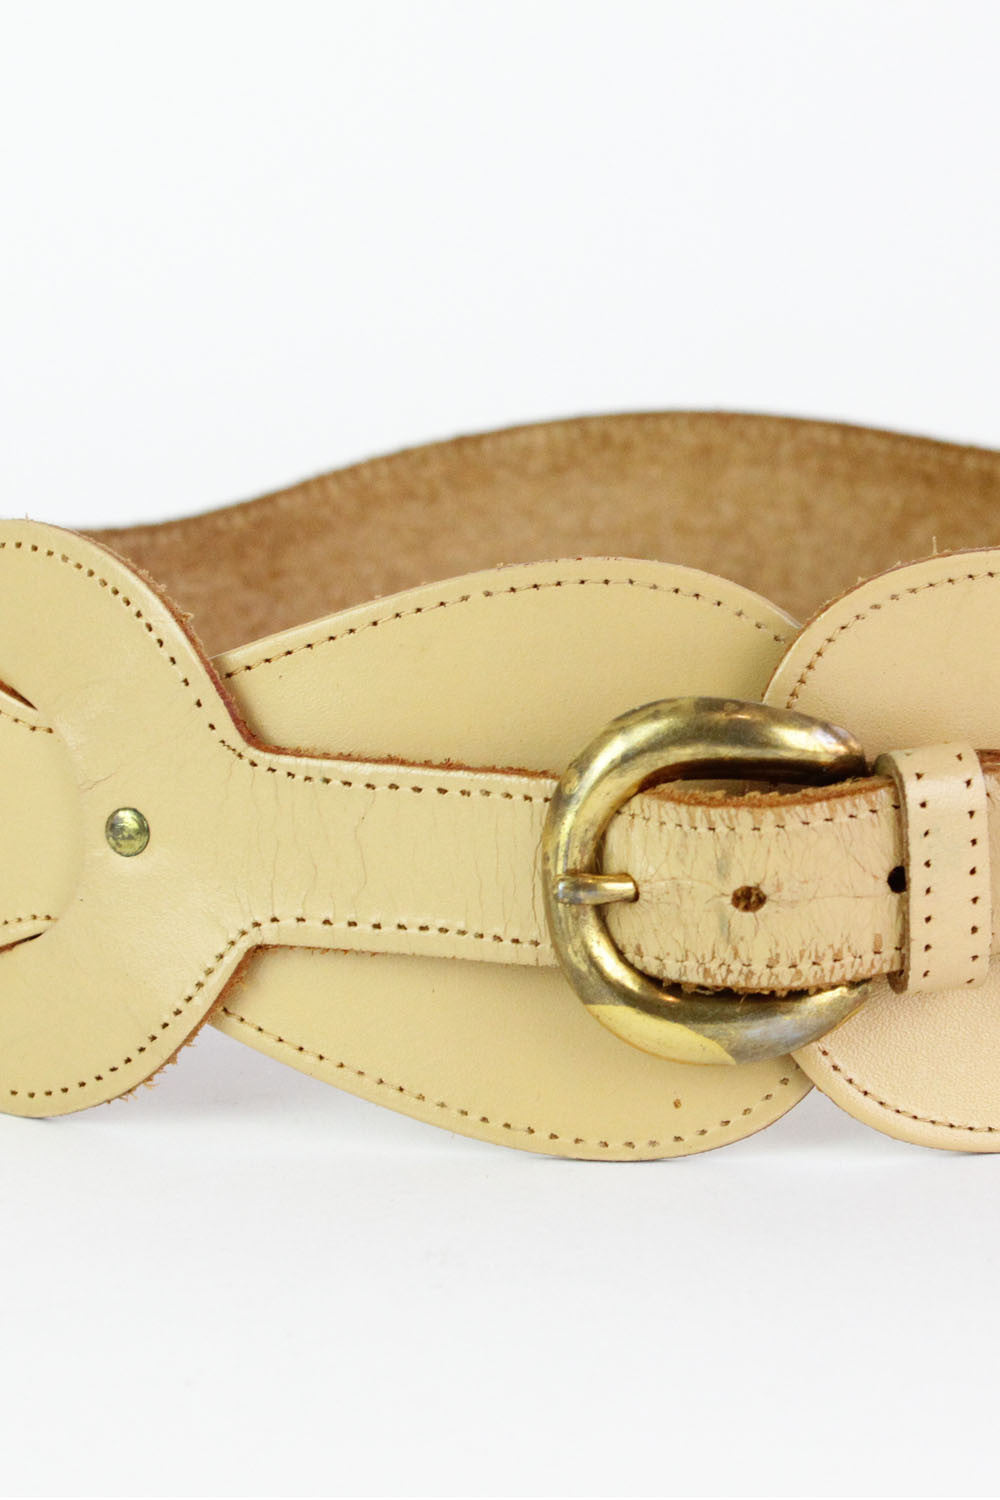 Nude Leather Infinity Belt S